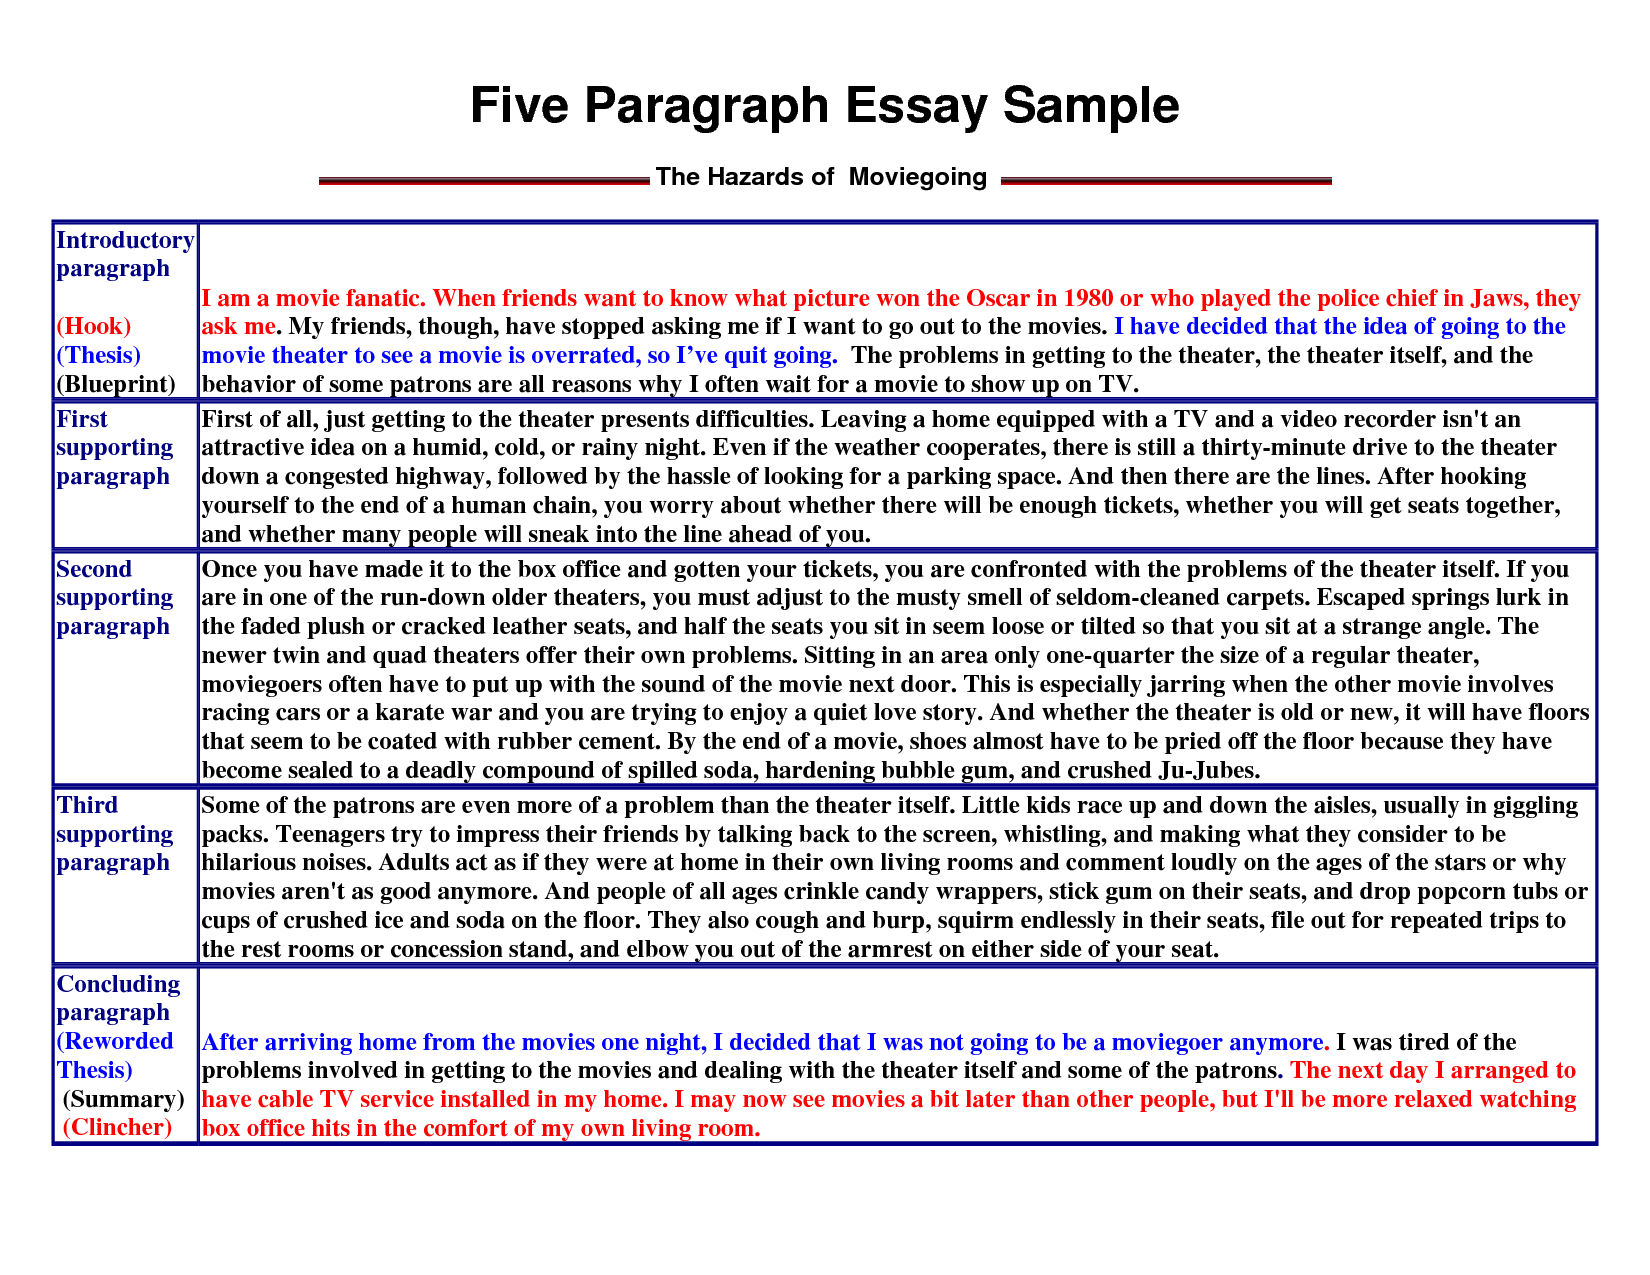 016 Paragraph Essay Singular 5 Outline High School Example 6th Grade Topics For 5th Full